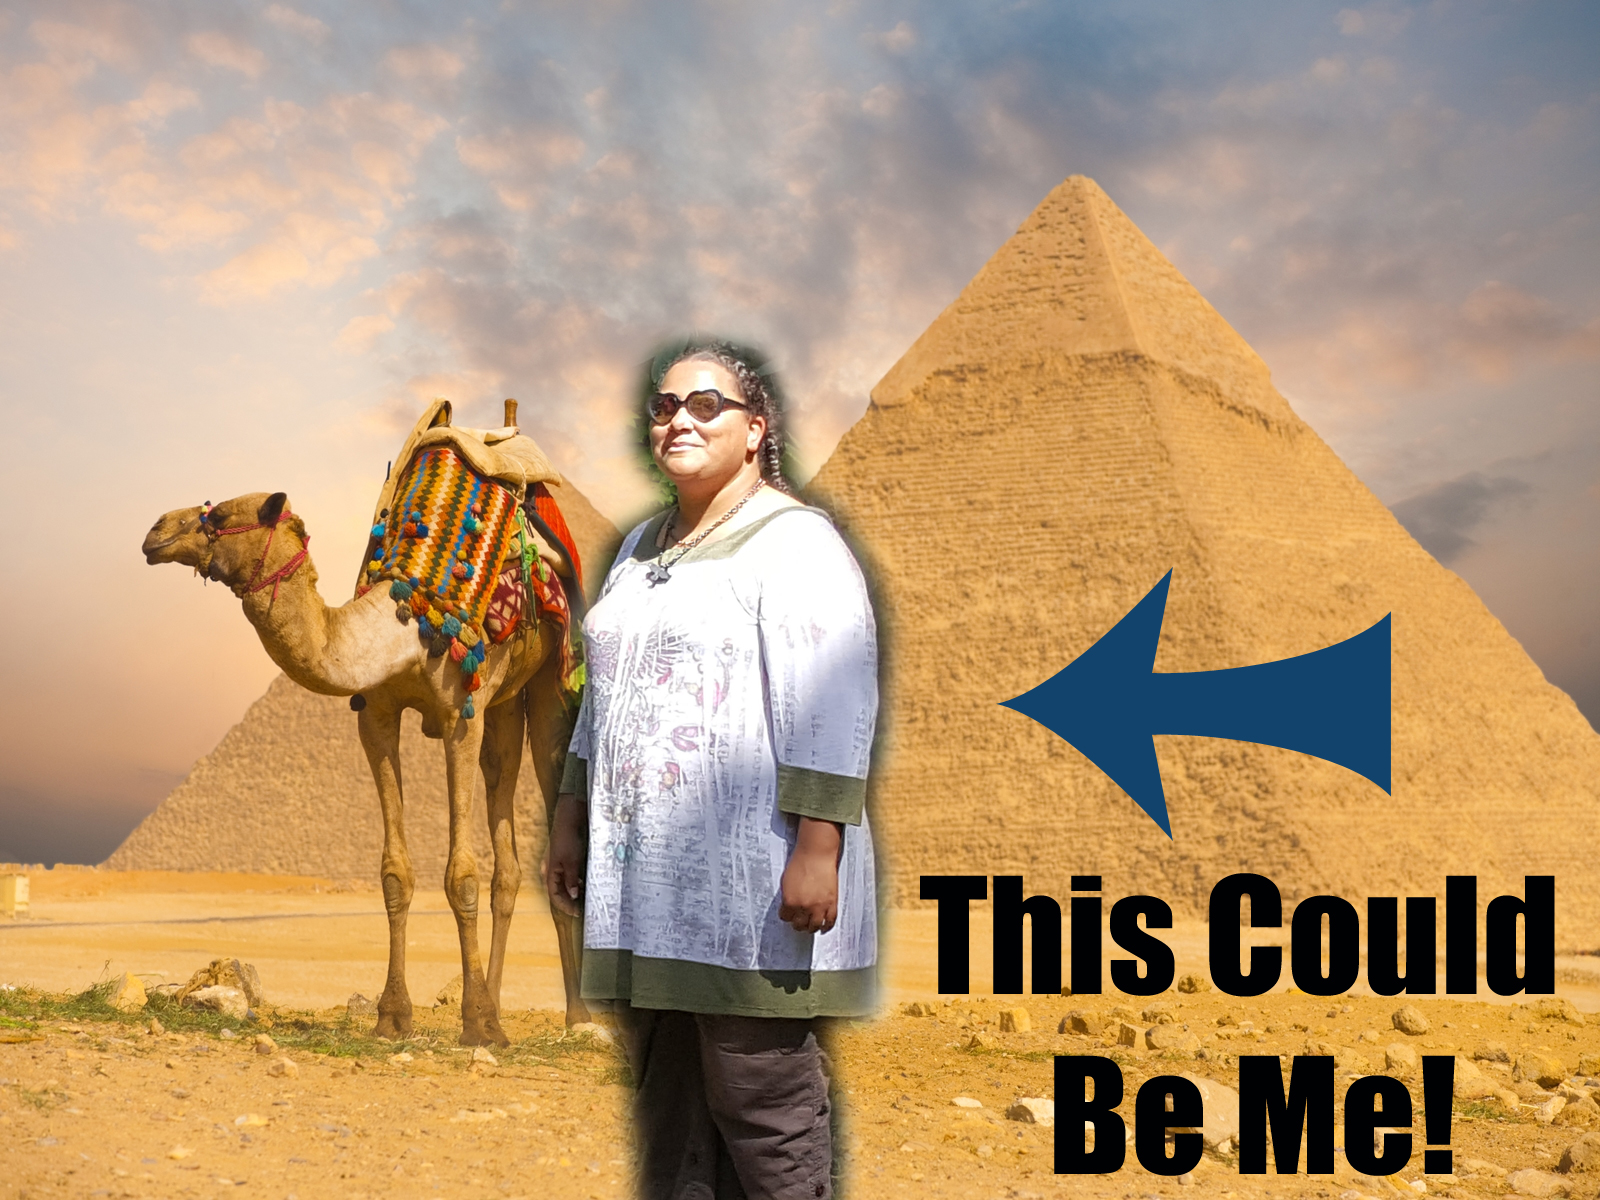 A photoshopped image of tempest standing next to a camel with the great Pyramid in the background. An arrow points to Tempest, under it are the words This Could Be Me!